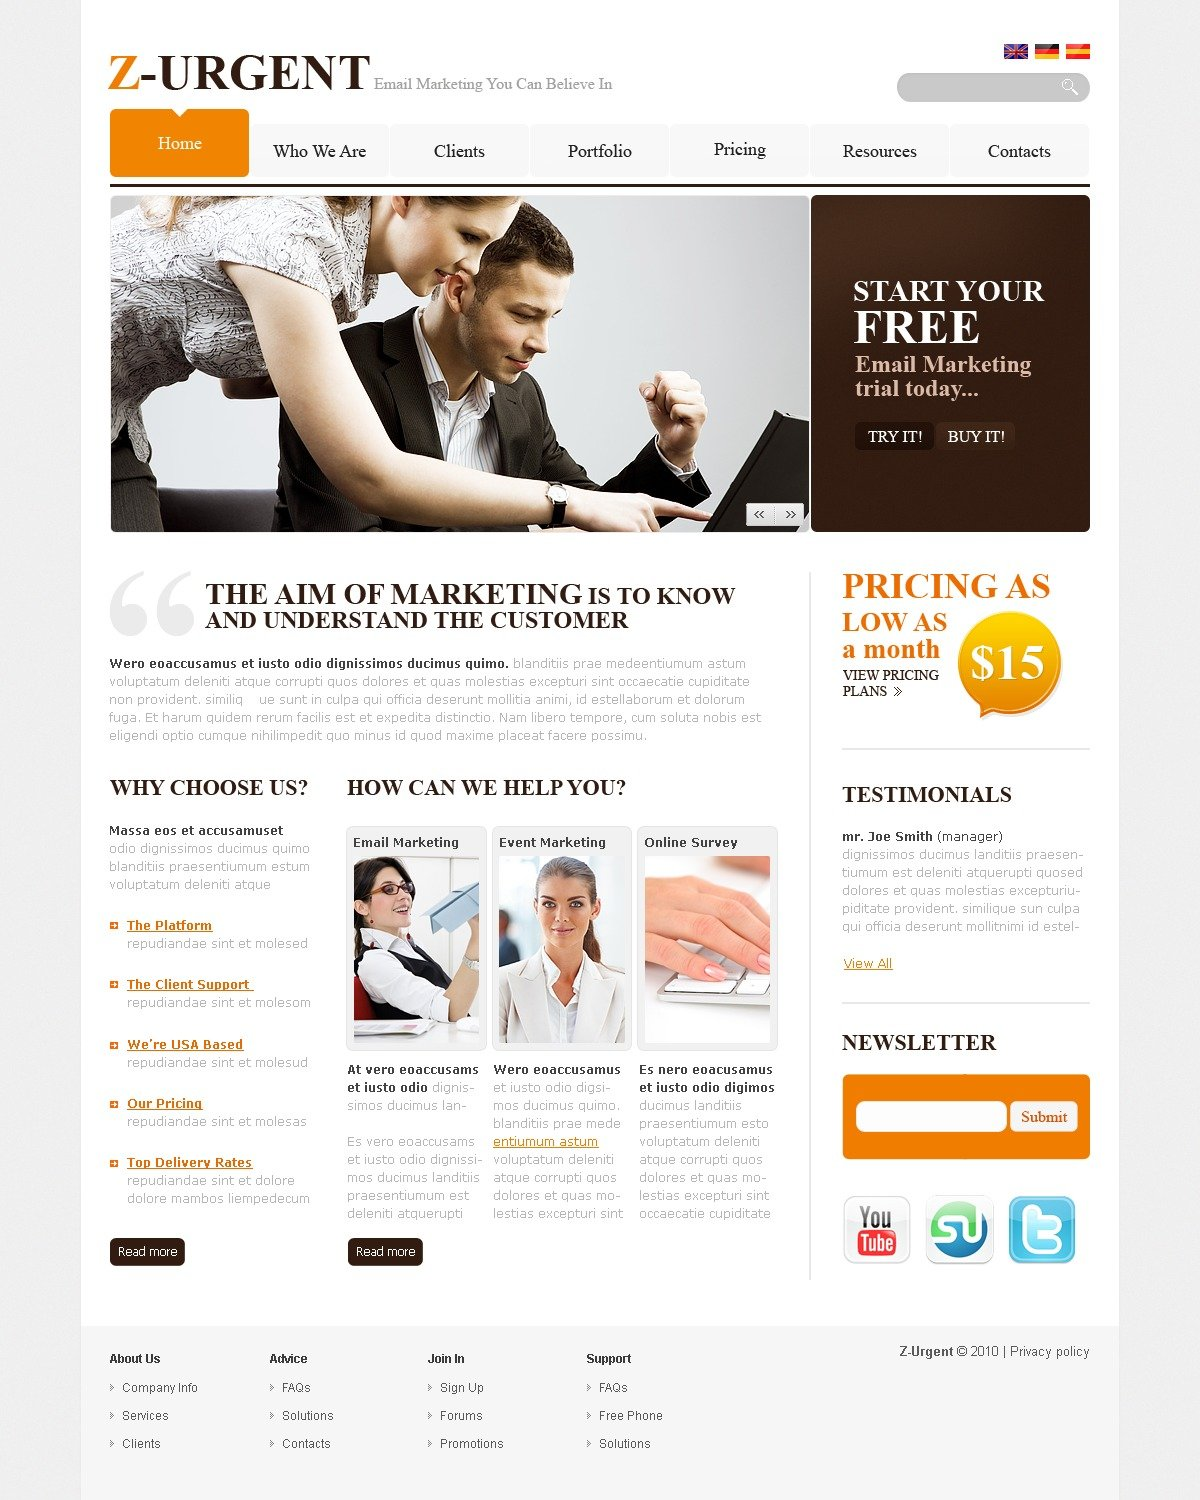 The Z-urgent Business Company PSD Design 54501, one of the best PSD templates of its kind (business, flash 8, wide), also known as z-urgent business company PSD template, corporate solutions PSD template, innovations PSD template, contacts PSD template, service PSD template, support PSD template, information dealer PSD template, stocks PSD template, team PSD template, success PSD template, money PSD template, marketing PSD template, director PSD template, manager PSD template, analytics PSD template, planning PSD template, limited PSD template, office PSD template, sales and related with z-urgent business company, corporate solutions, innovations, contacts, service, support, information dealer, stocks, team, success, money, marketing, director, manager, analytics, planning, limited, office, sales, etc.